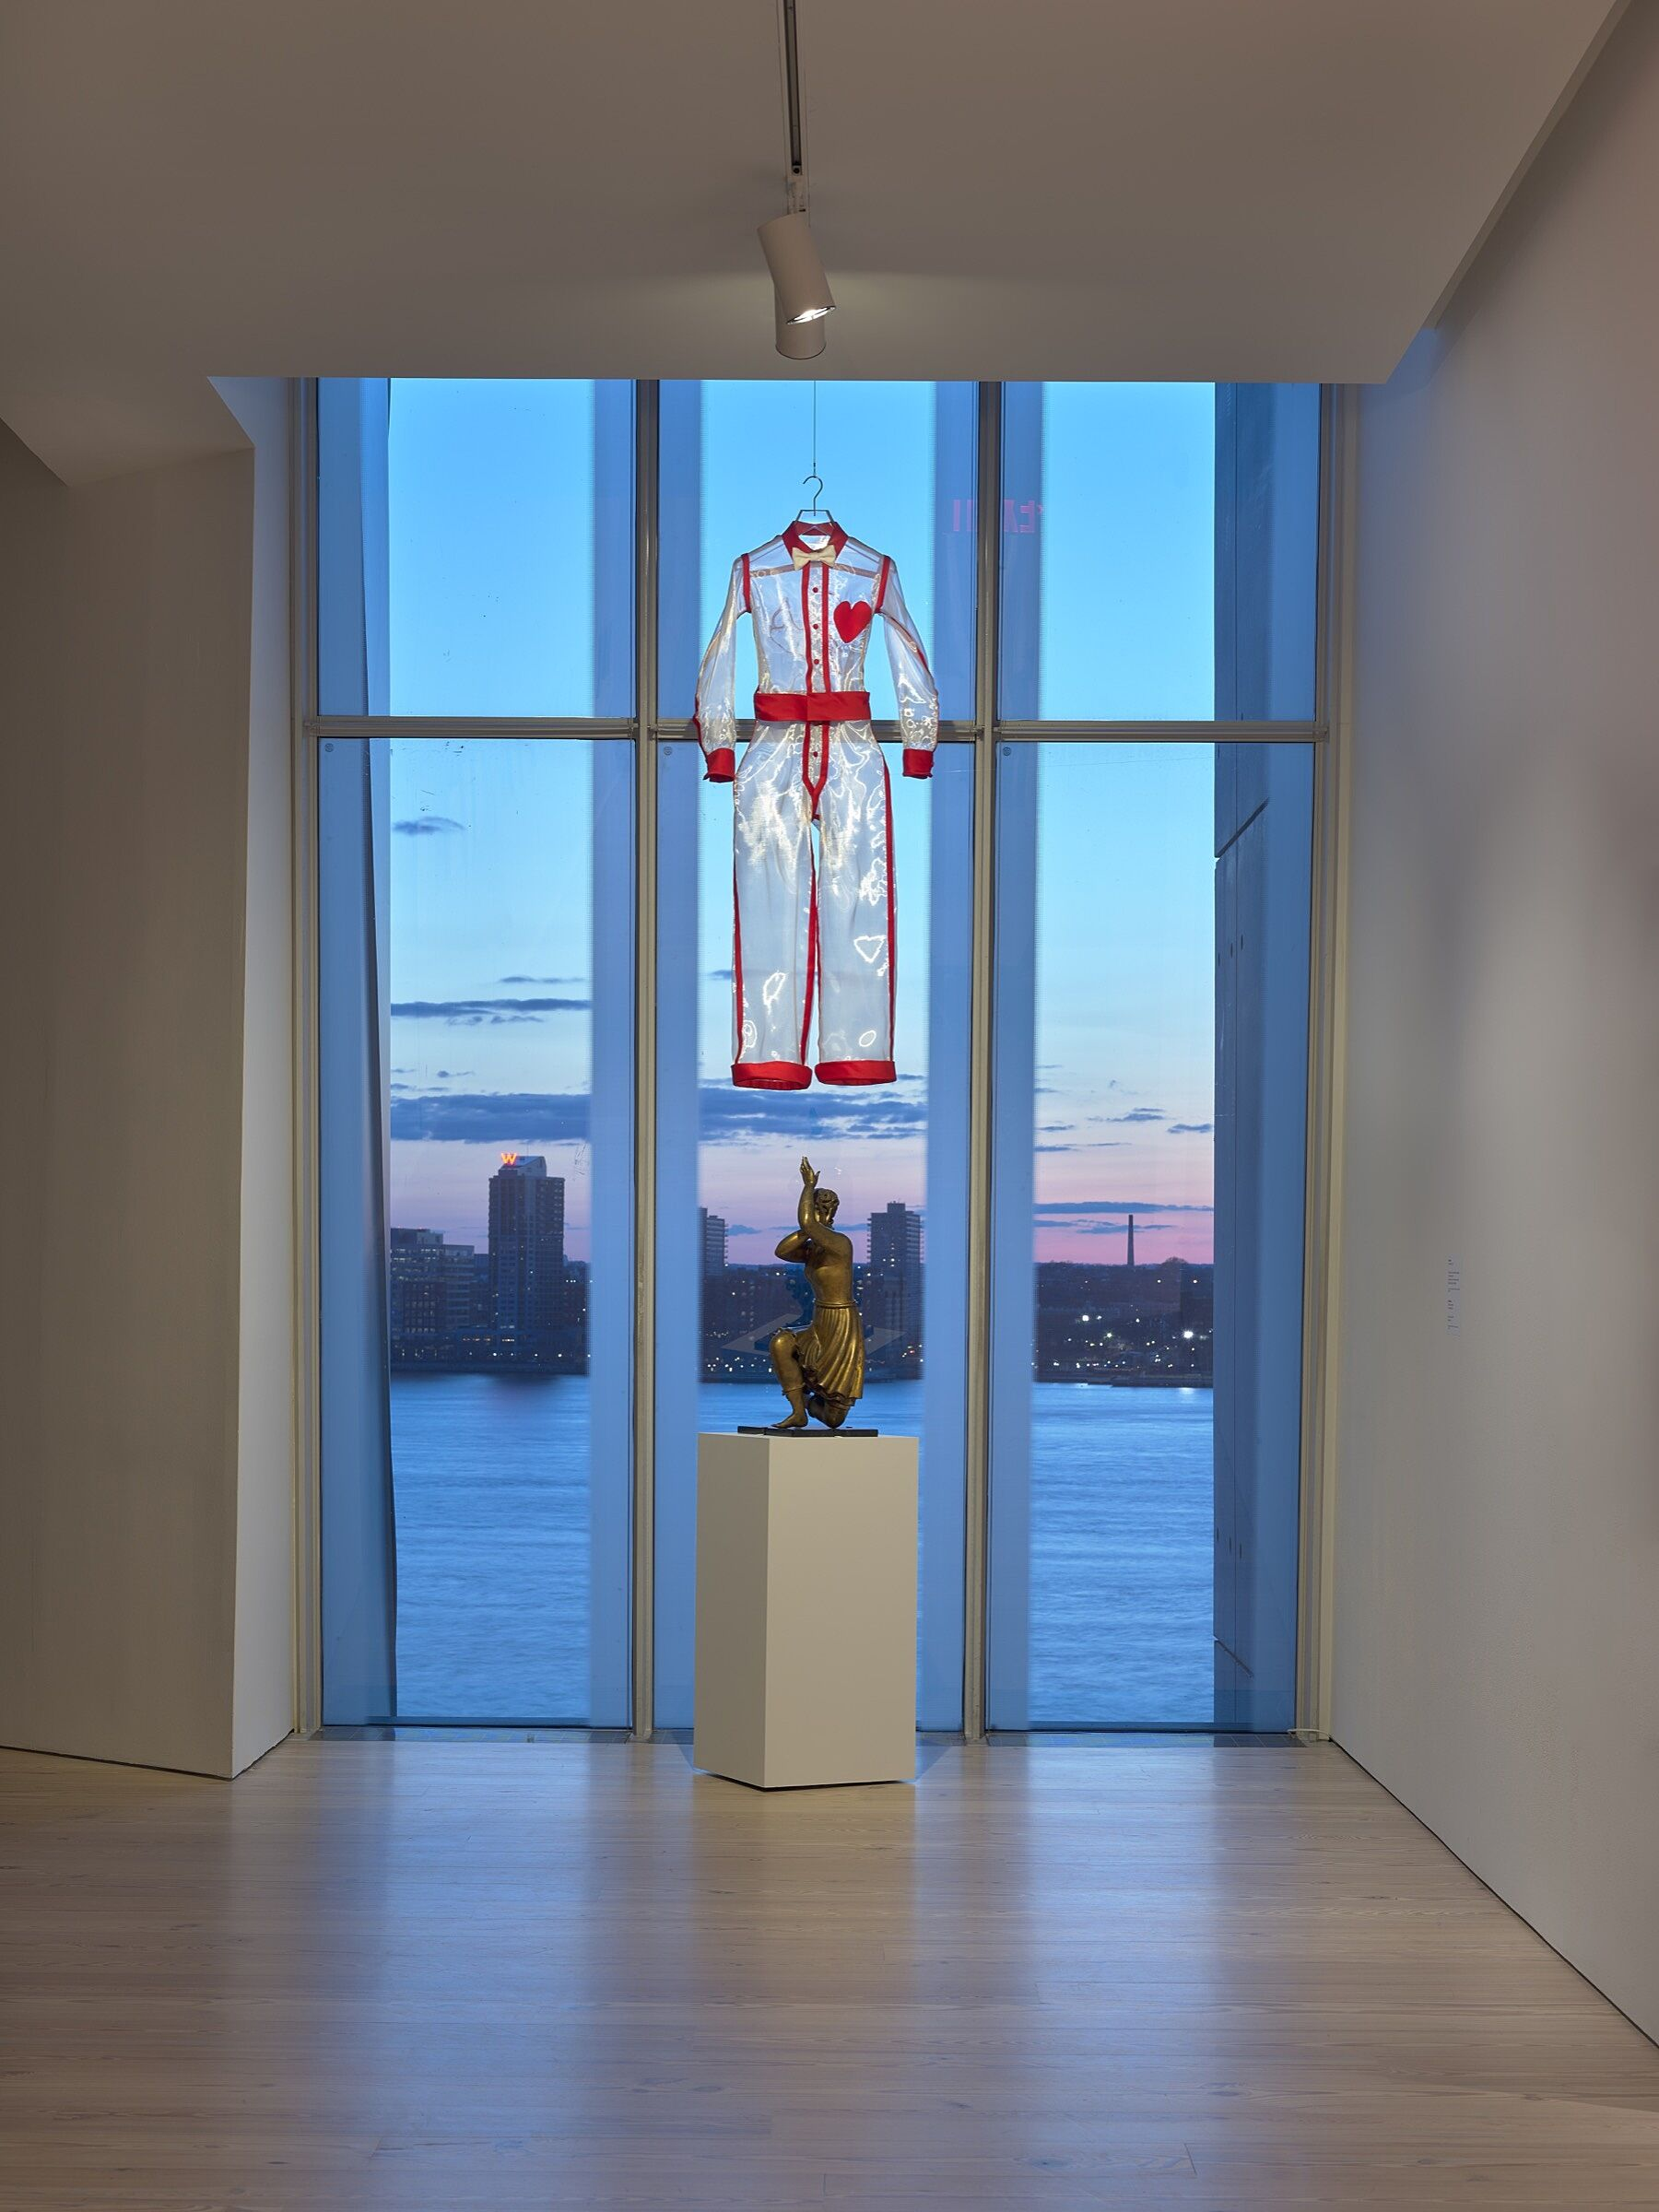 A sheer white costume hanging in front of a window.